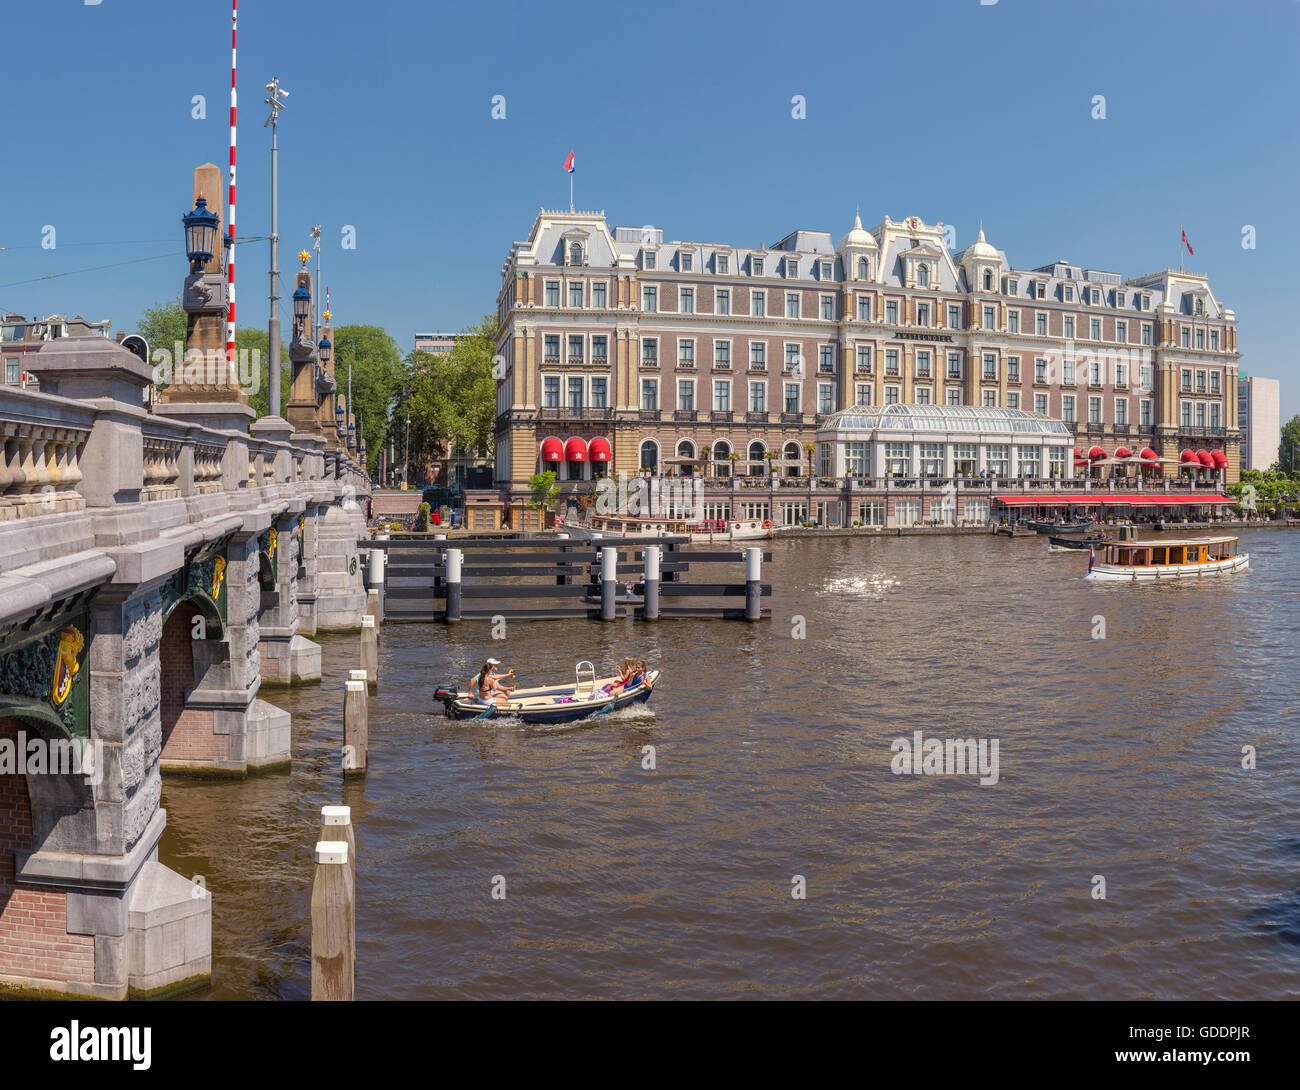 InterContinental Amstel hotel at the river Amstel - Stock Image